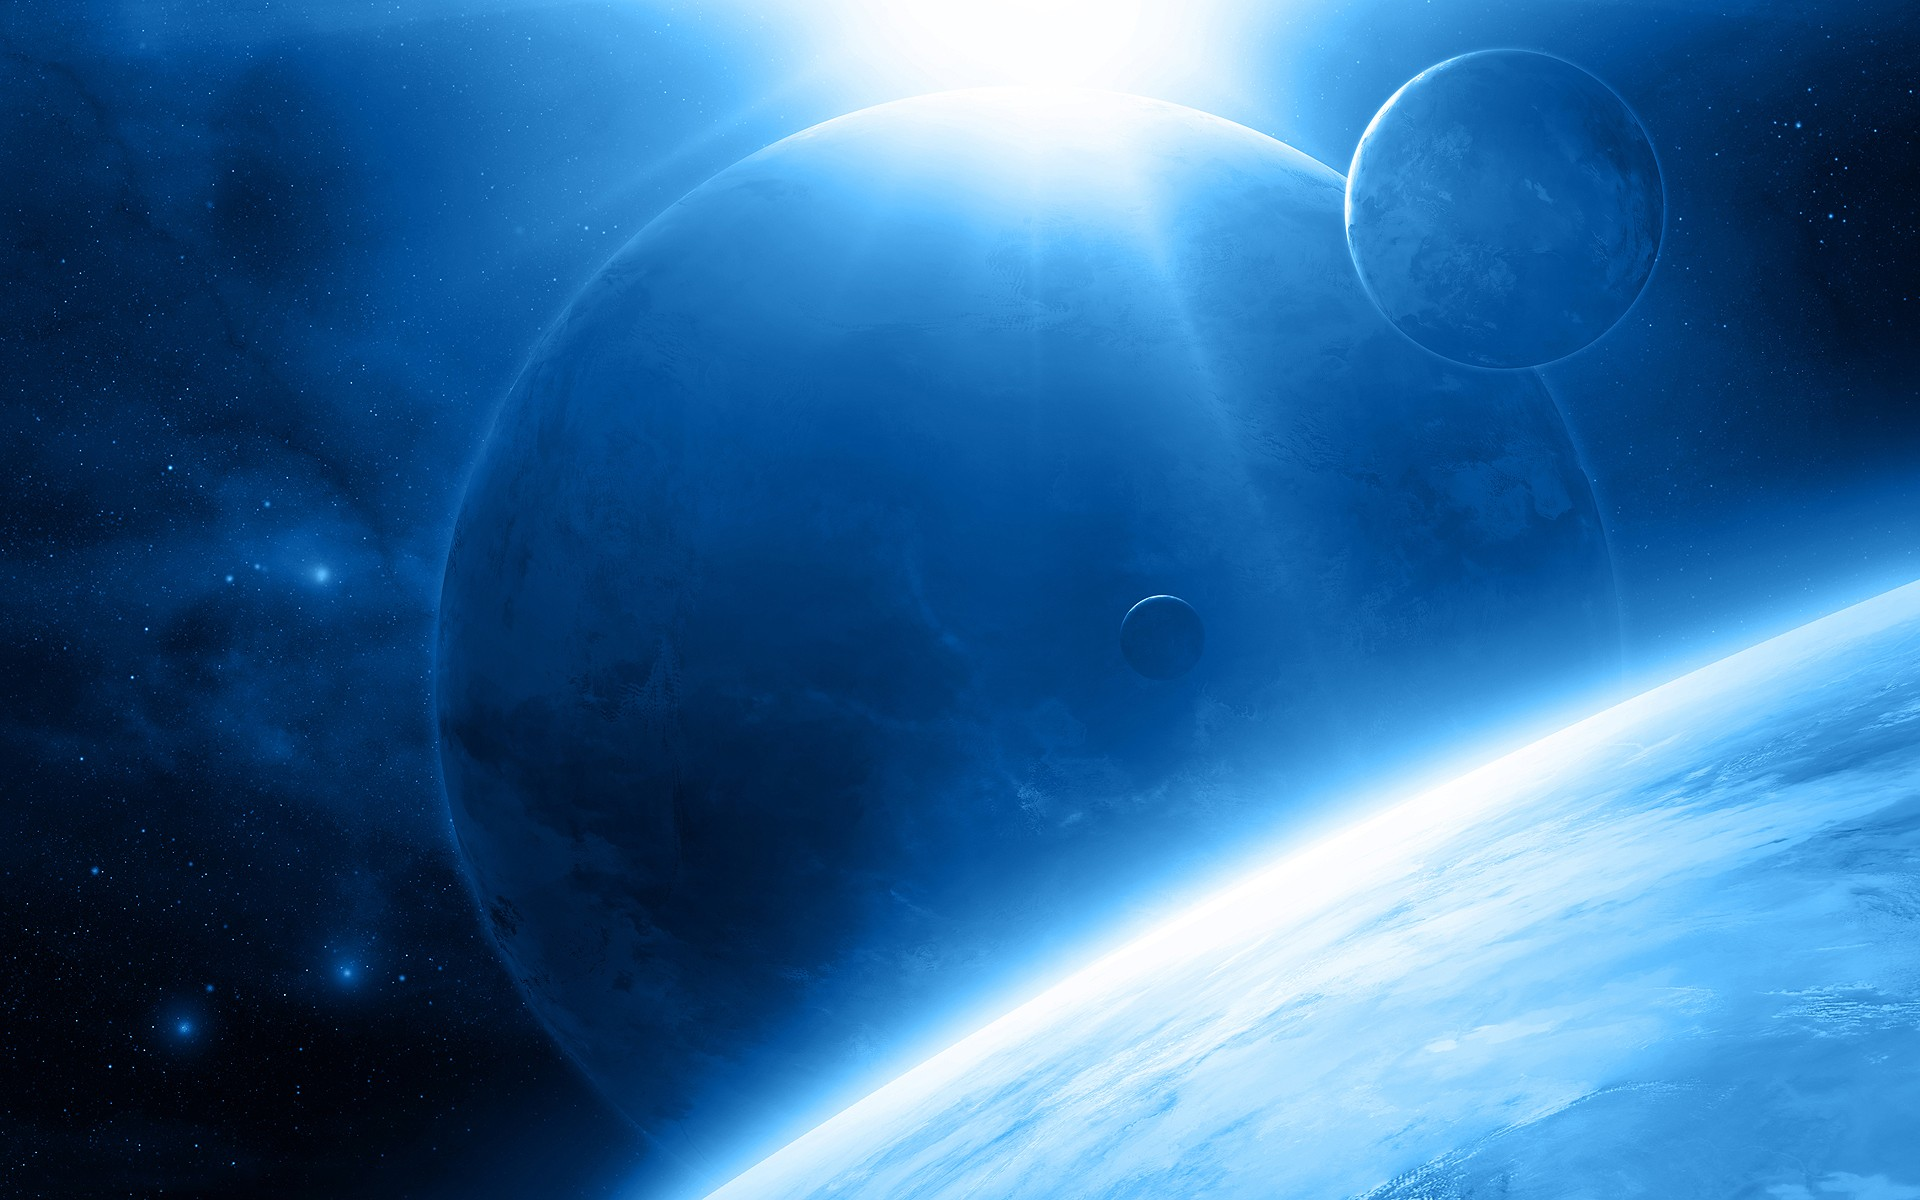 Blue space background download free awesome full hd - Space wallpaper 1920x1200 ...